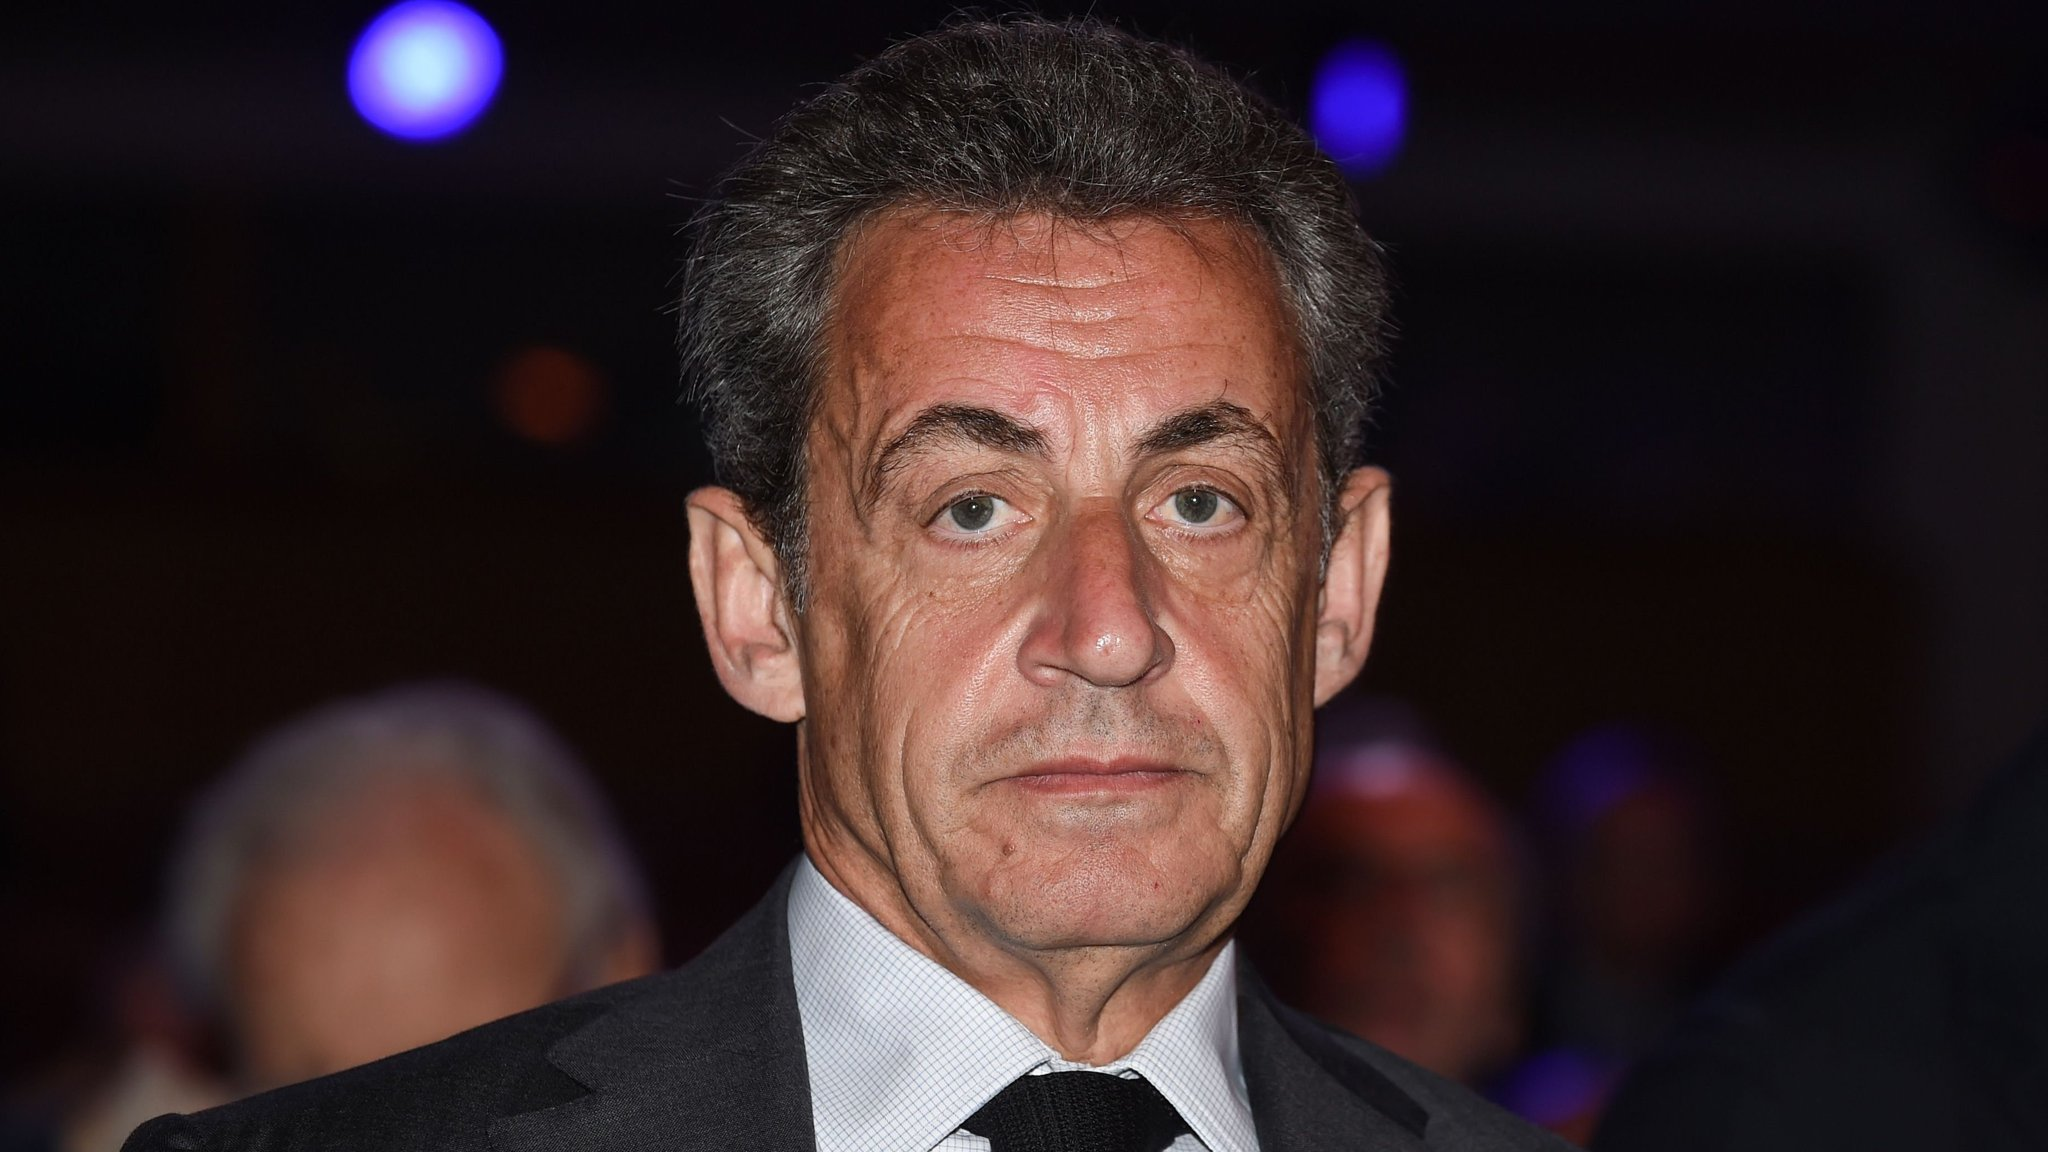 Former French President Nicolas Sarkozy Can Face Trial Court Rules Financial Times